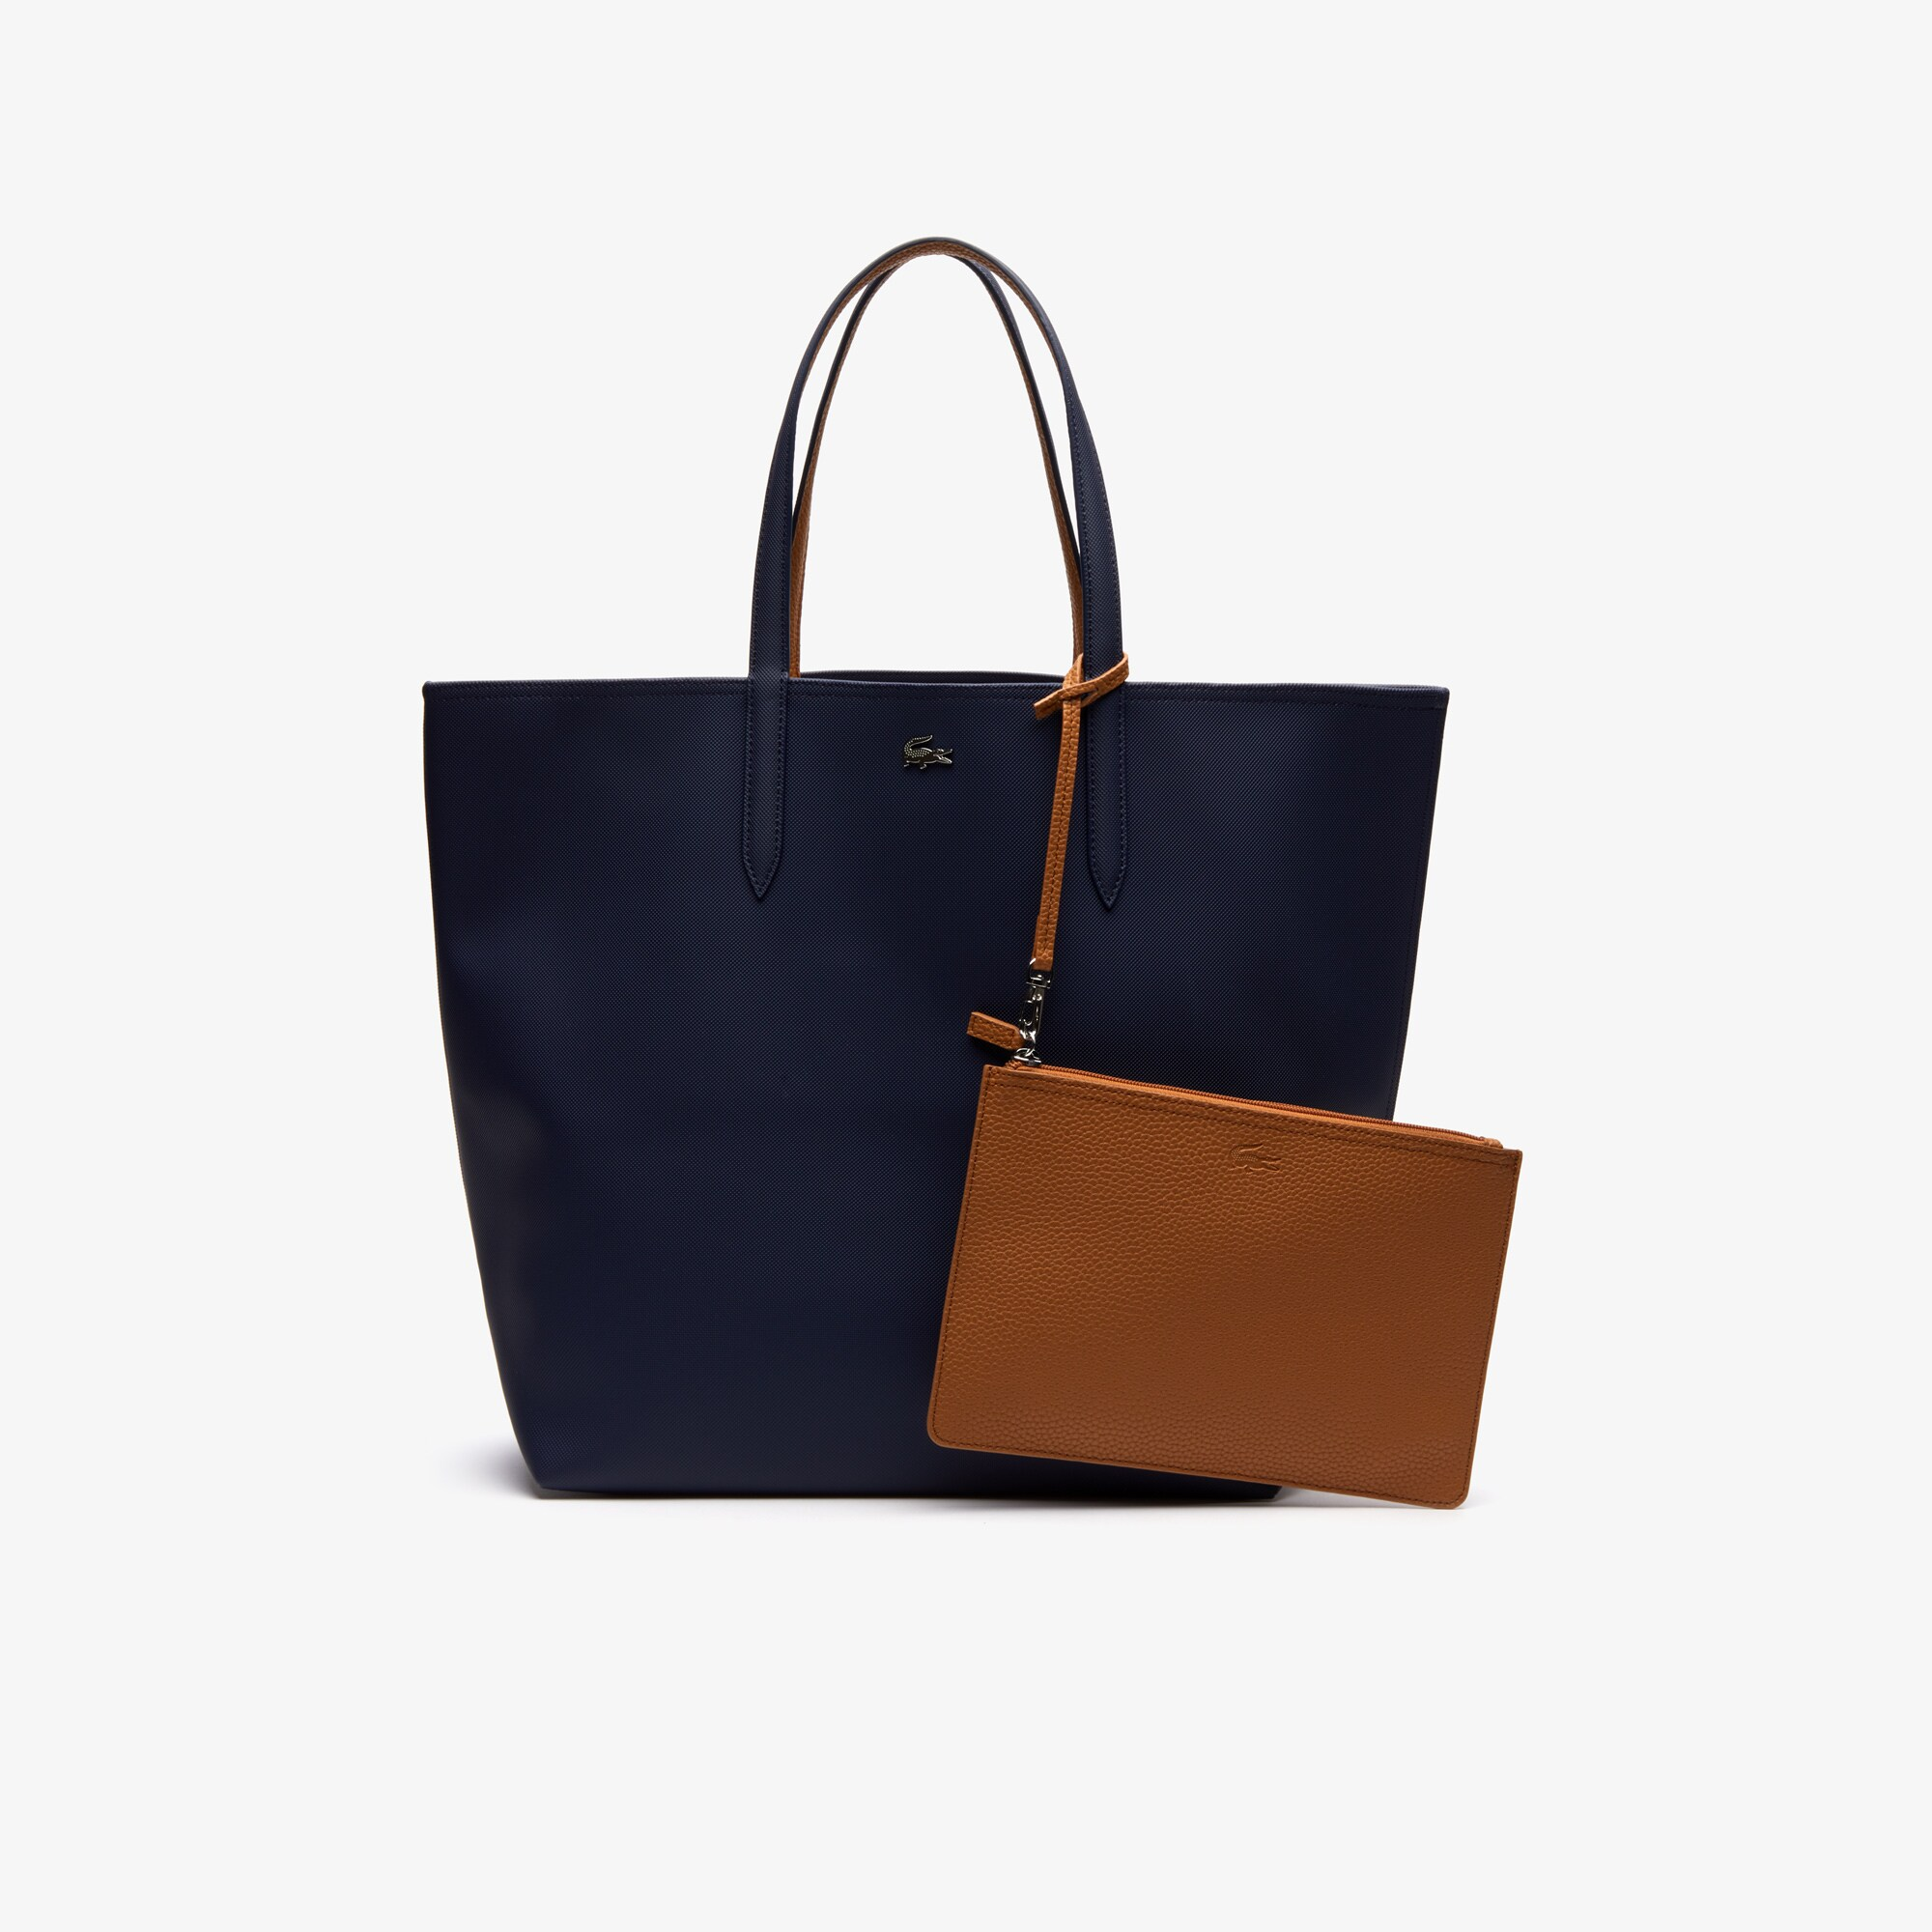 b1973ea3694 Bags & Handbags Collection | Women's Leather Goods | LACOSTE